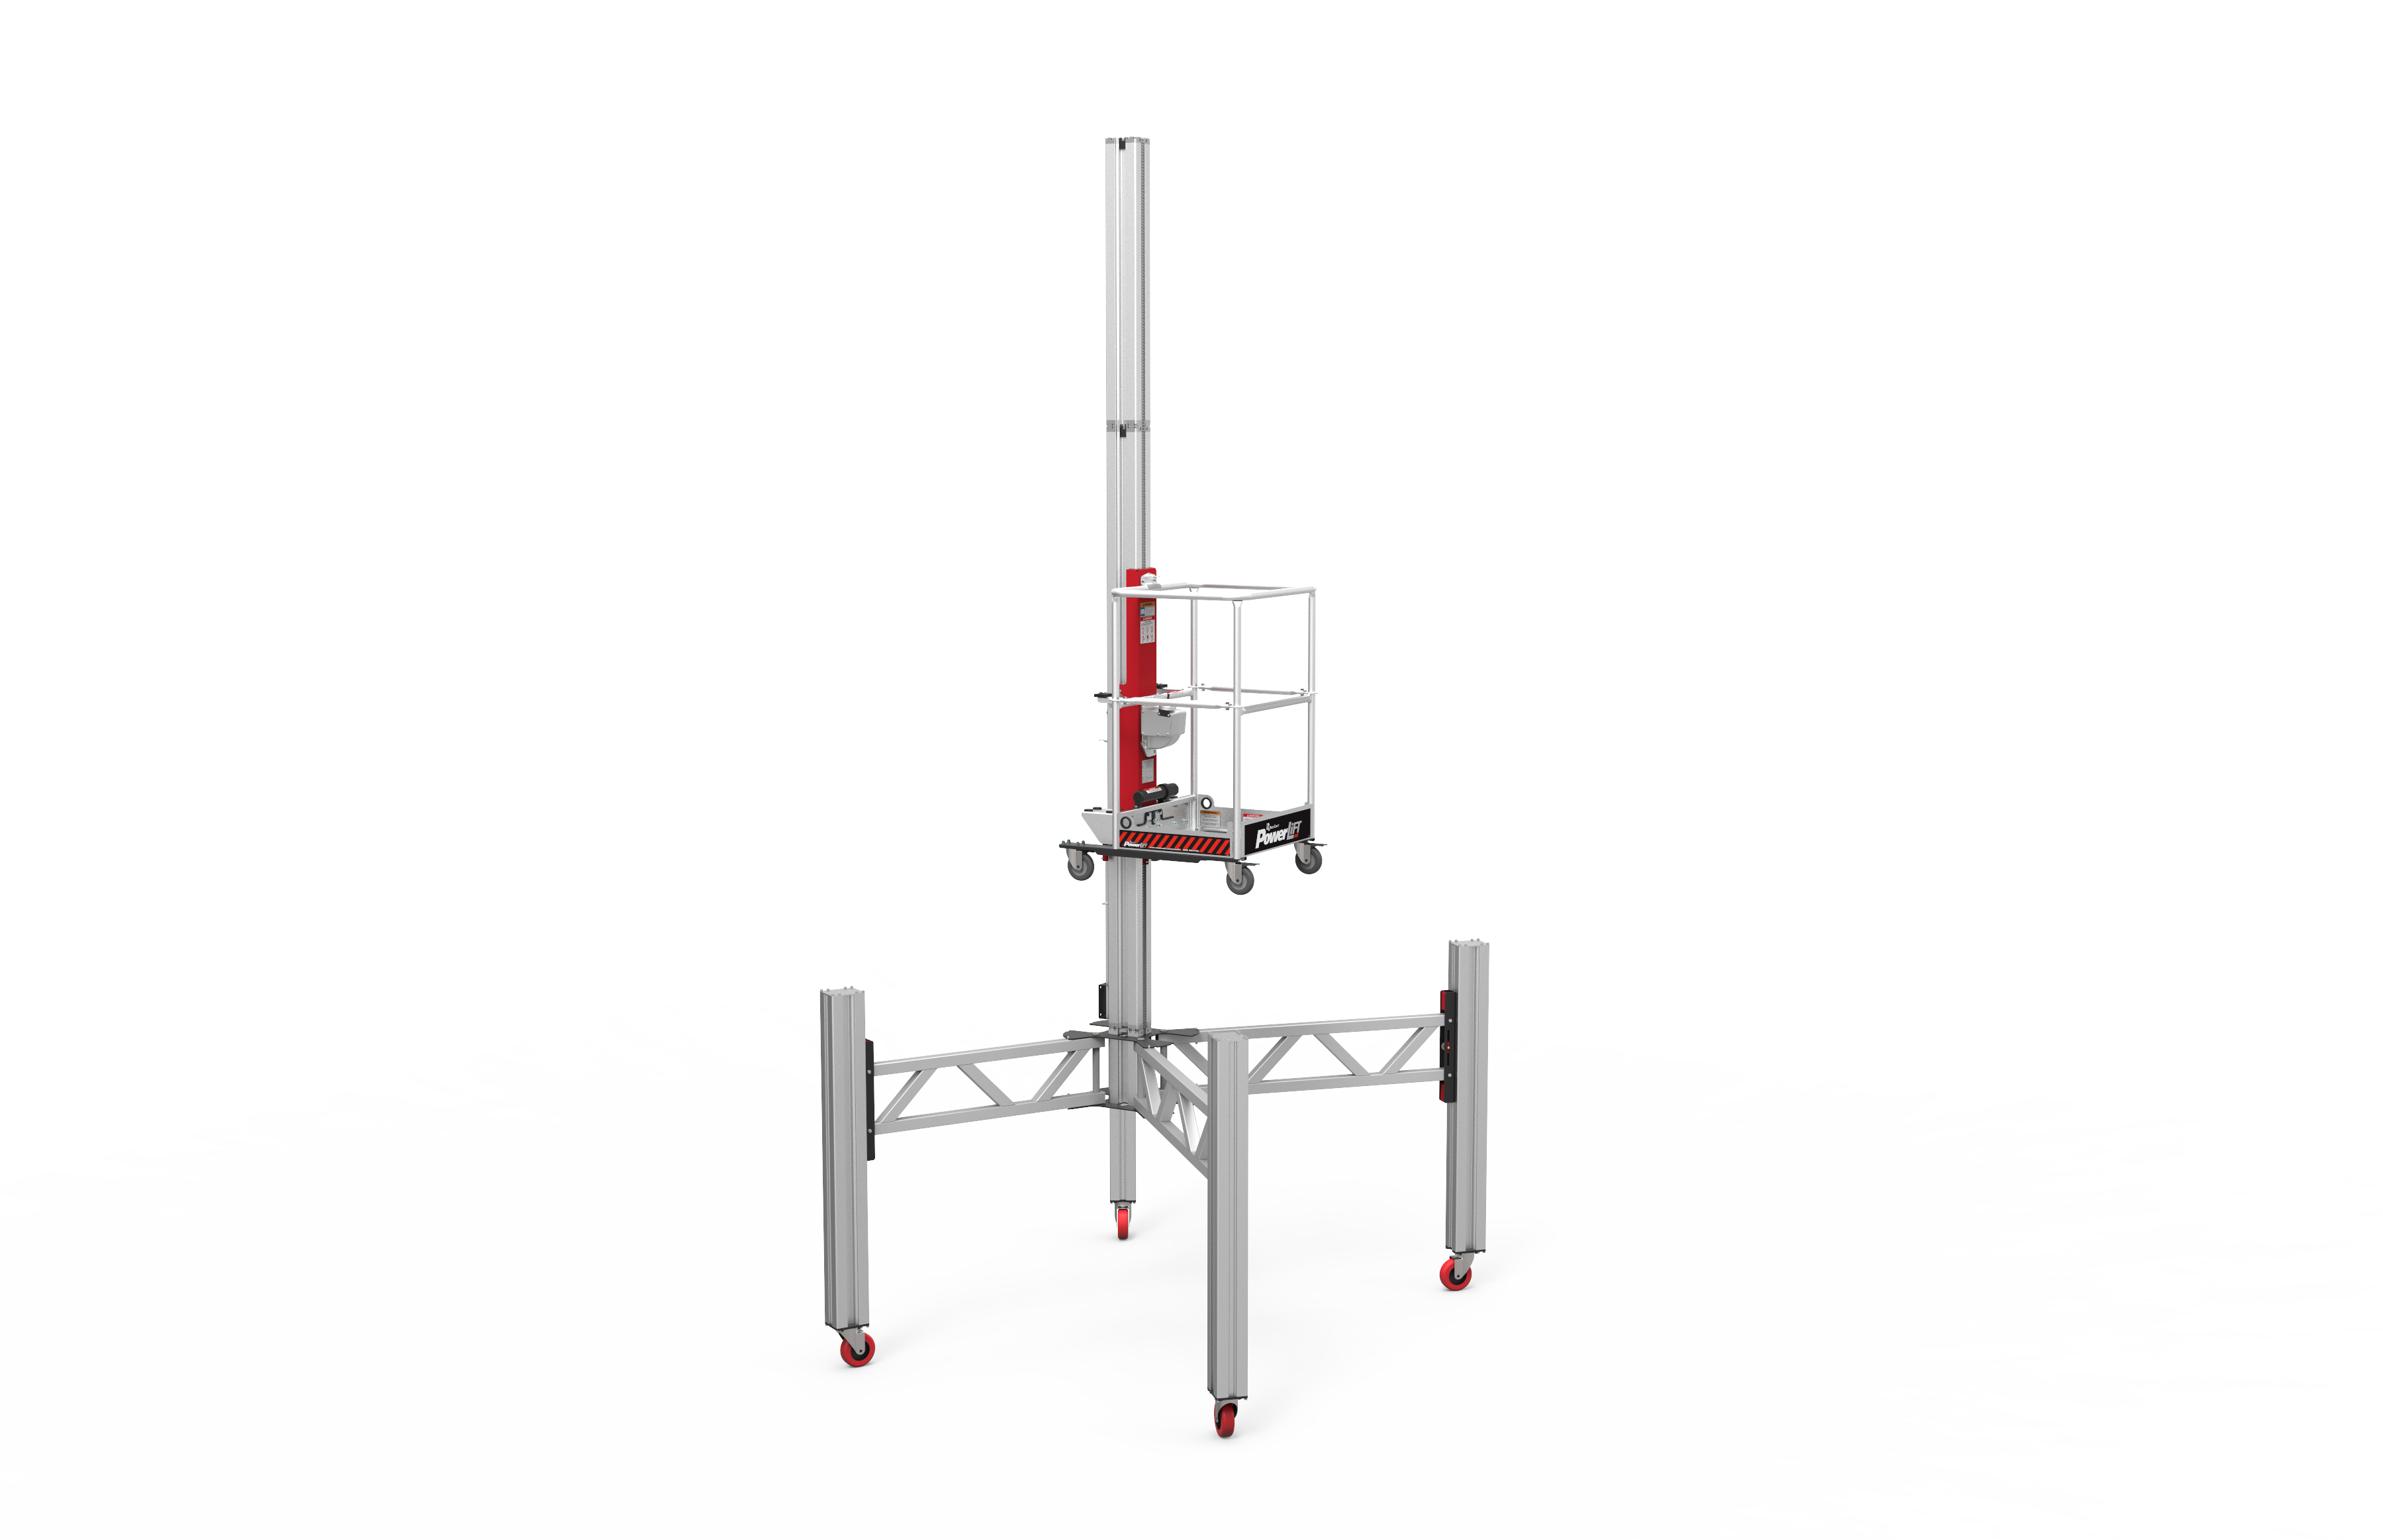 pl_stowed_fixed_base755.png